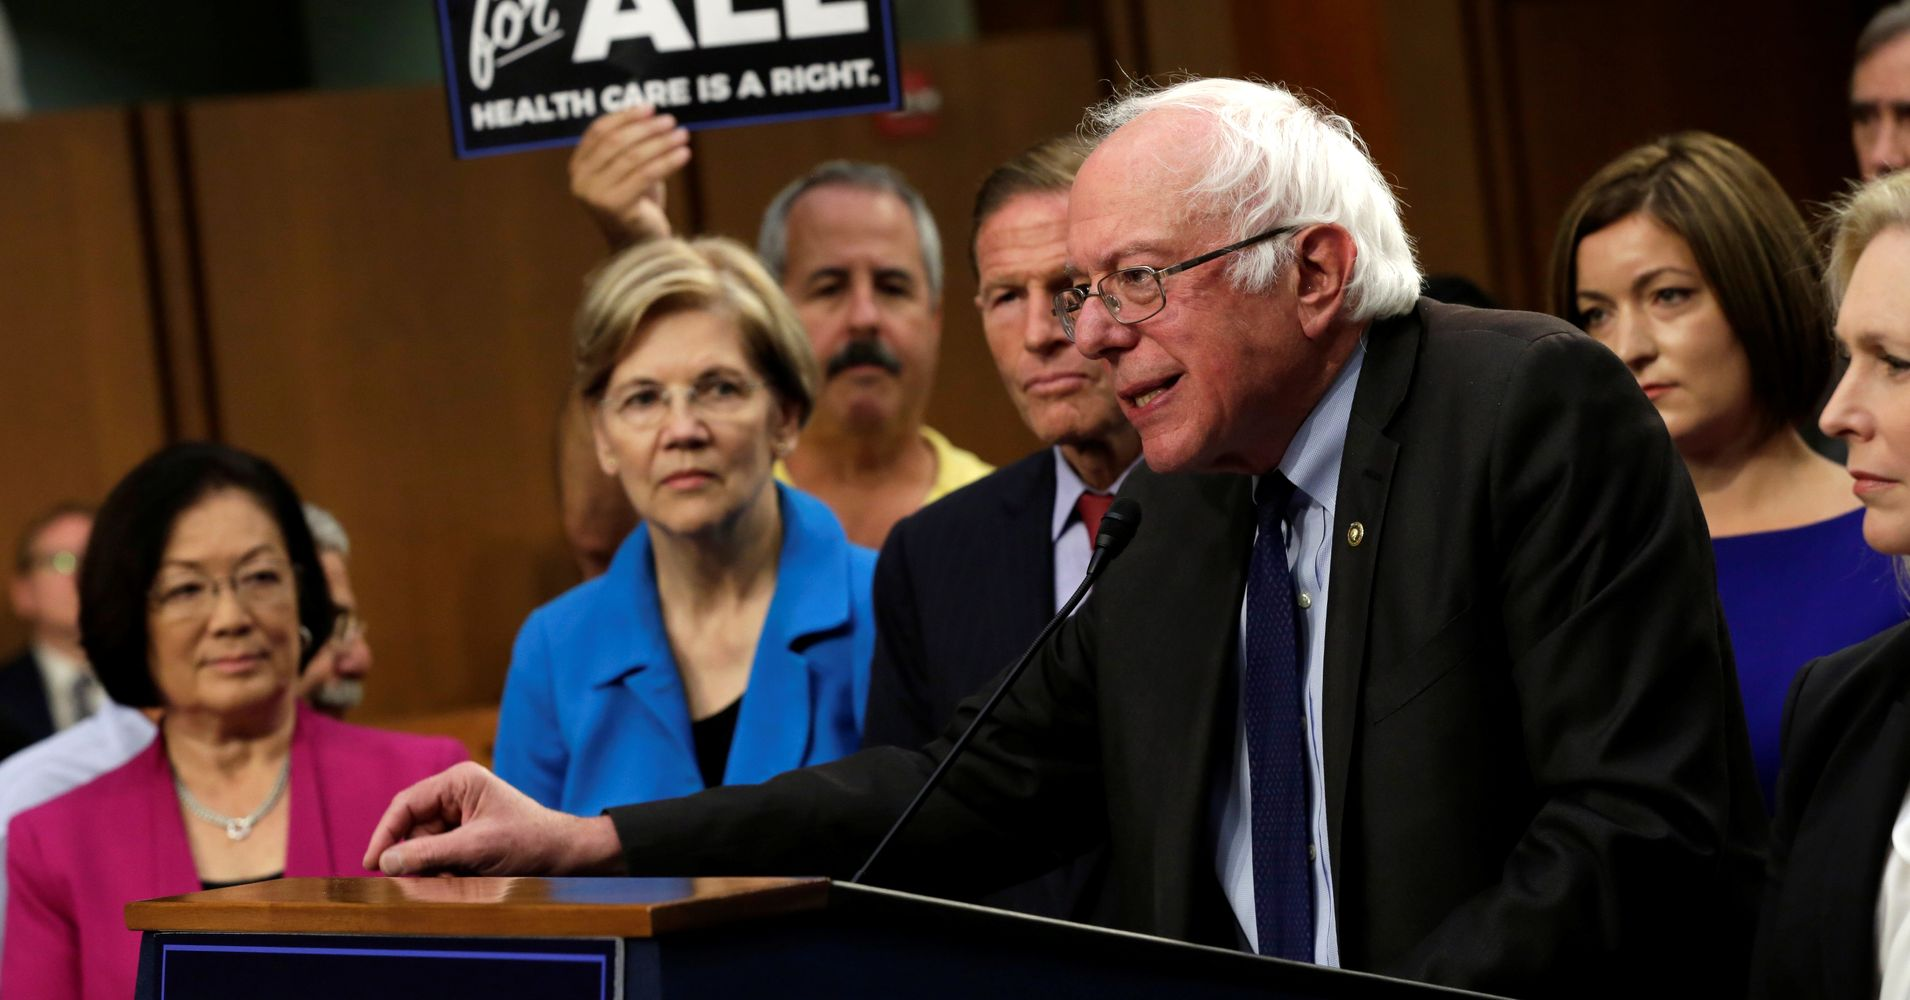 Bernie Sanders' Health Care Bill Is A Huge Win For The Abortion Rights Movement